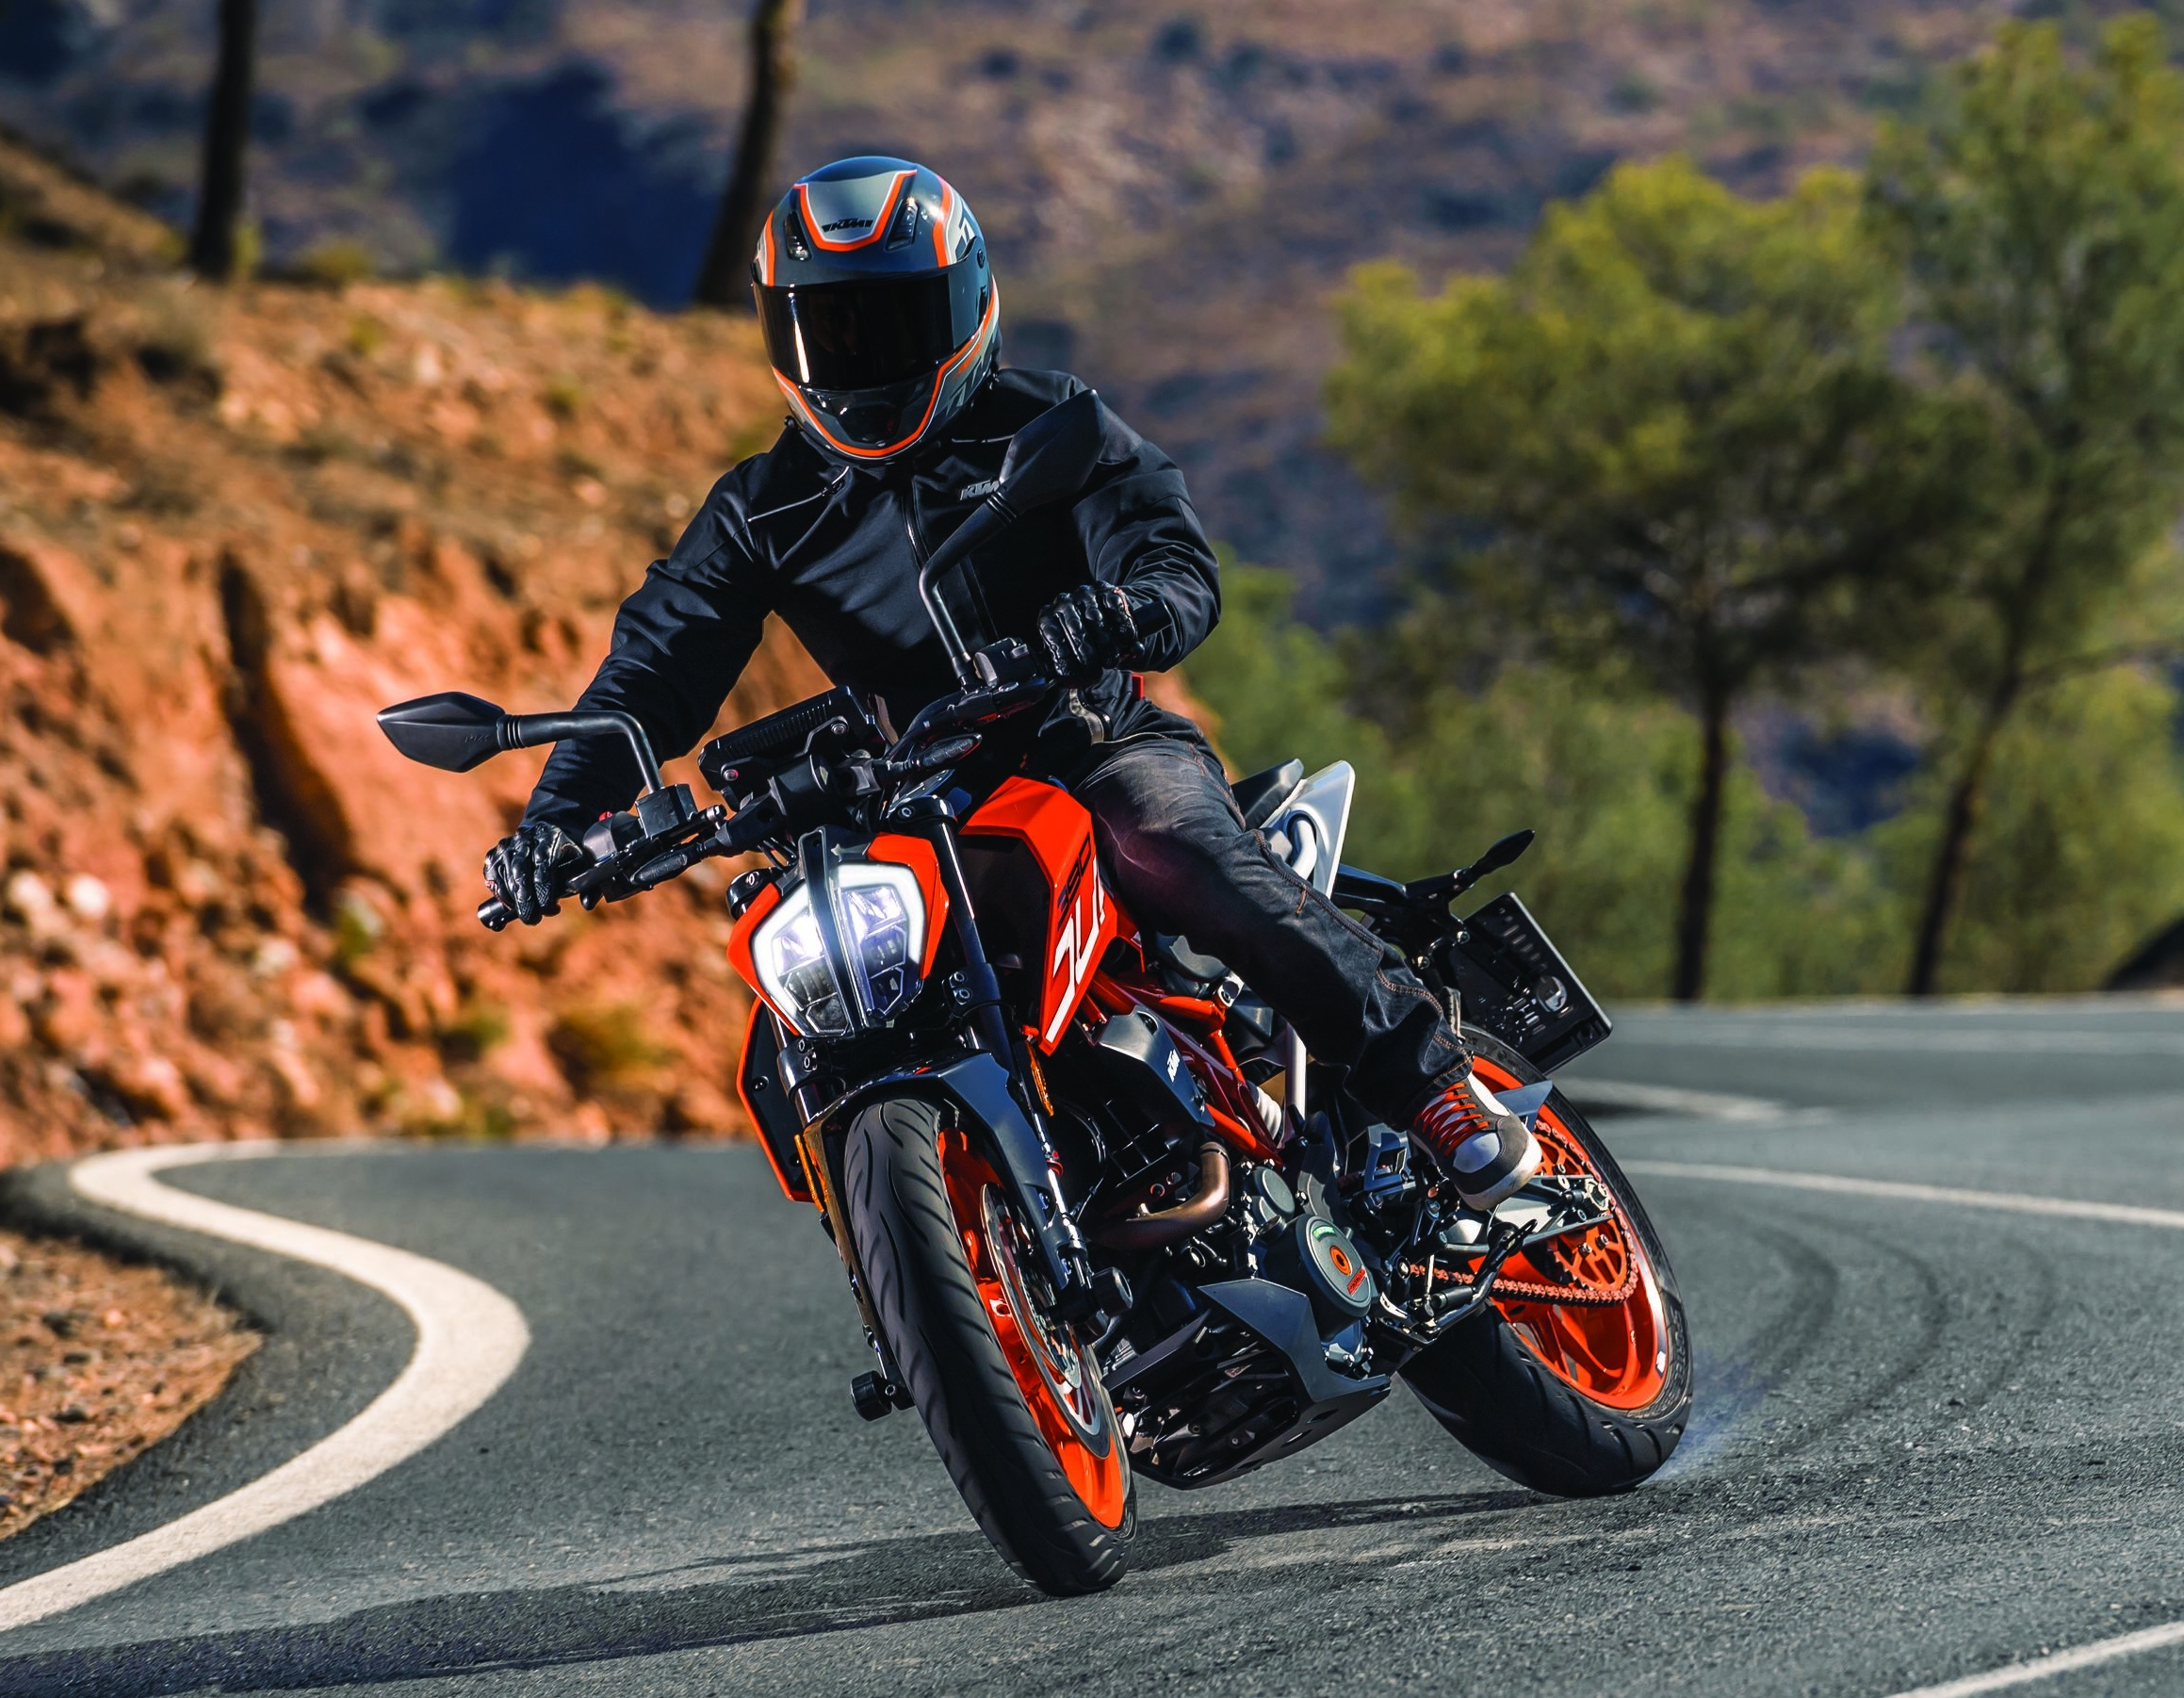 2017 ktm 390 and 250 duke launched in india priced at rm15 001 for 390 duke and rm11 534 for. Black Bedroom Furniture Sets. Home Design Ideas